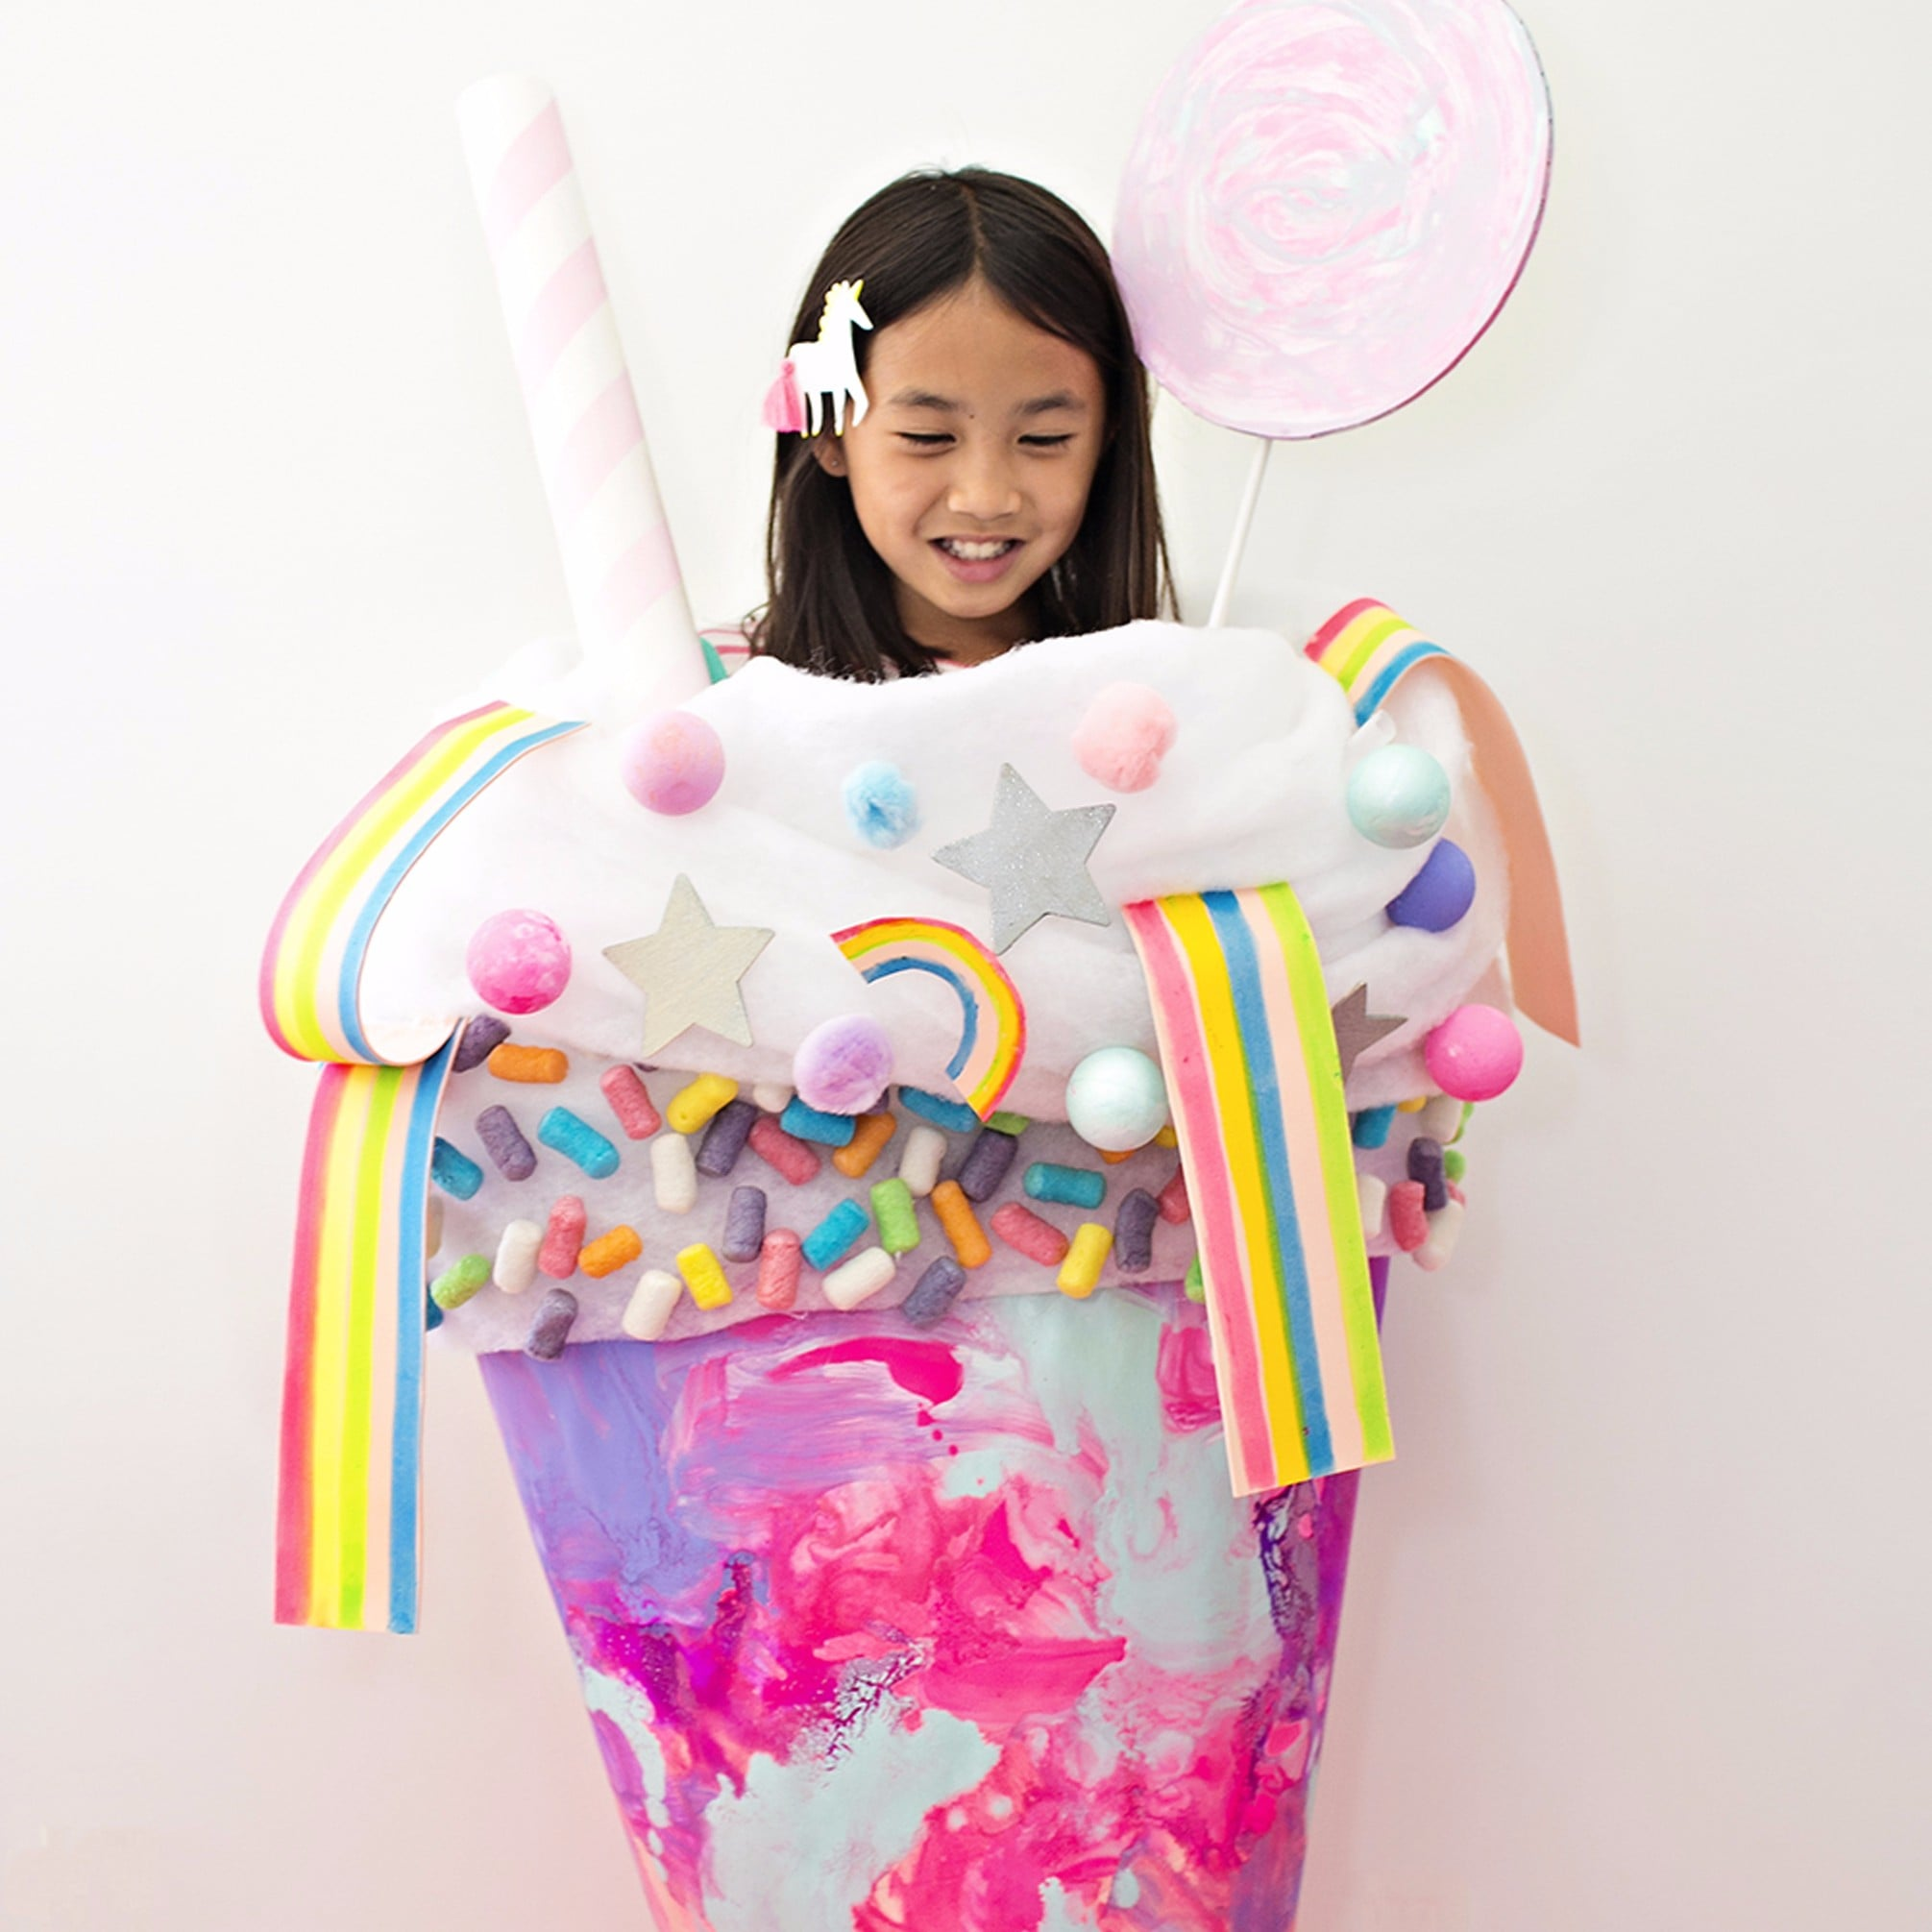 sc 1 st  Popsugar & DIY Halloween Costumes For Kids | POPSUGAR Moms